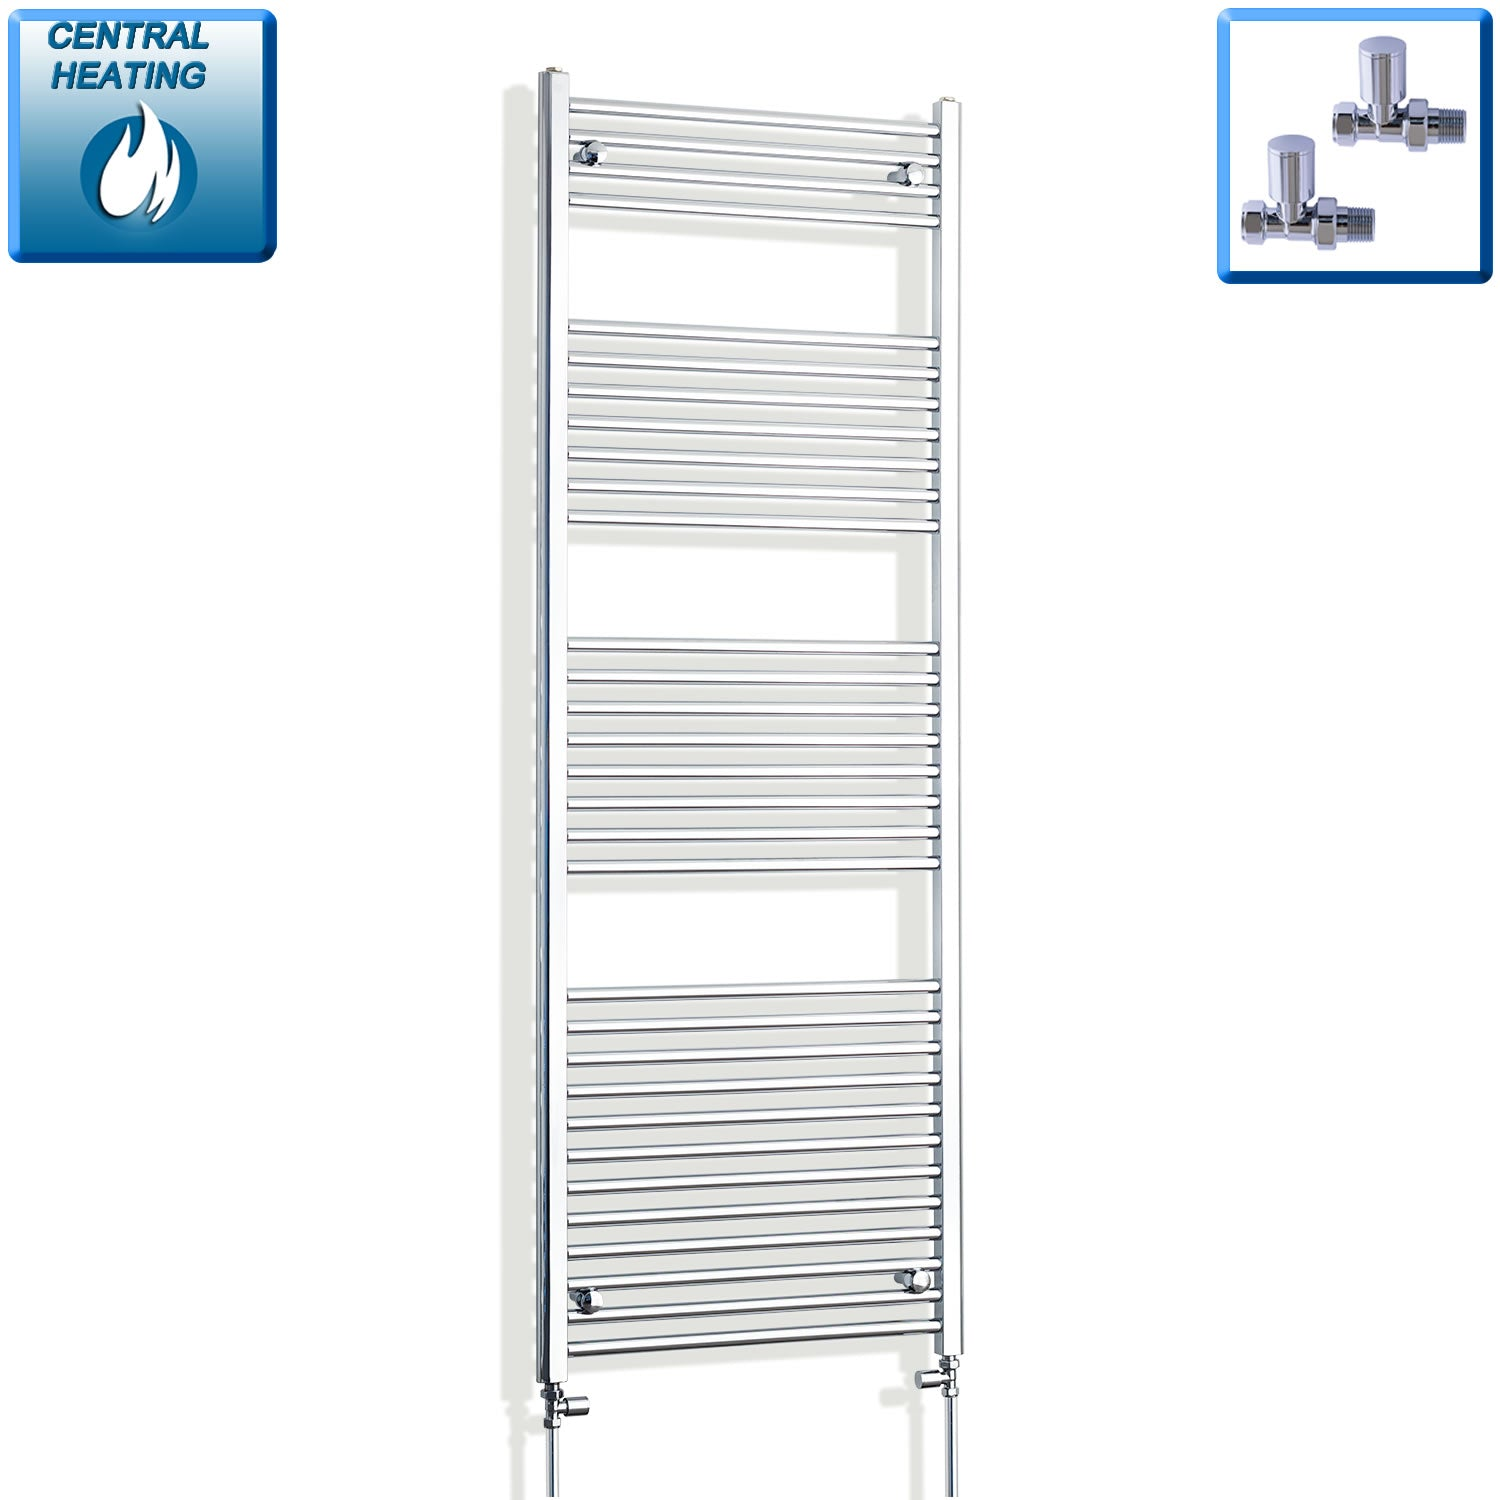 650mm Wide 1800mm High Chrome Towel Rail Radiator With Straight Valve